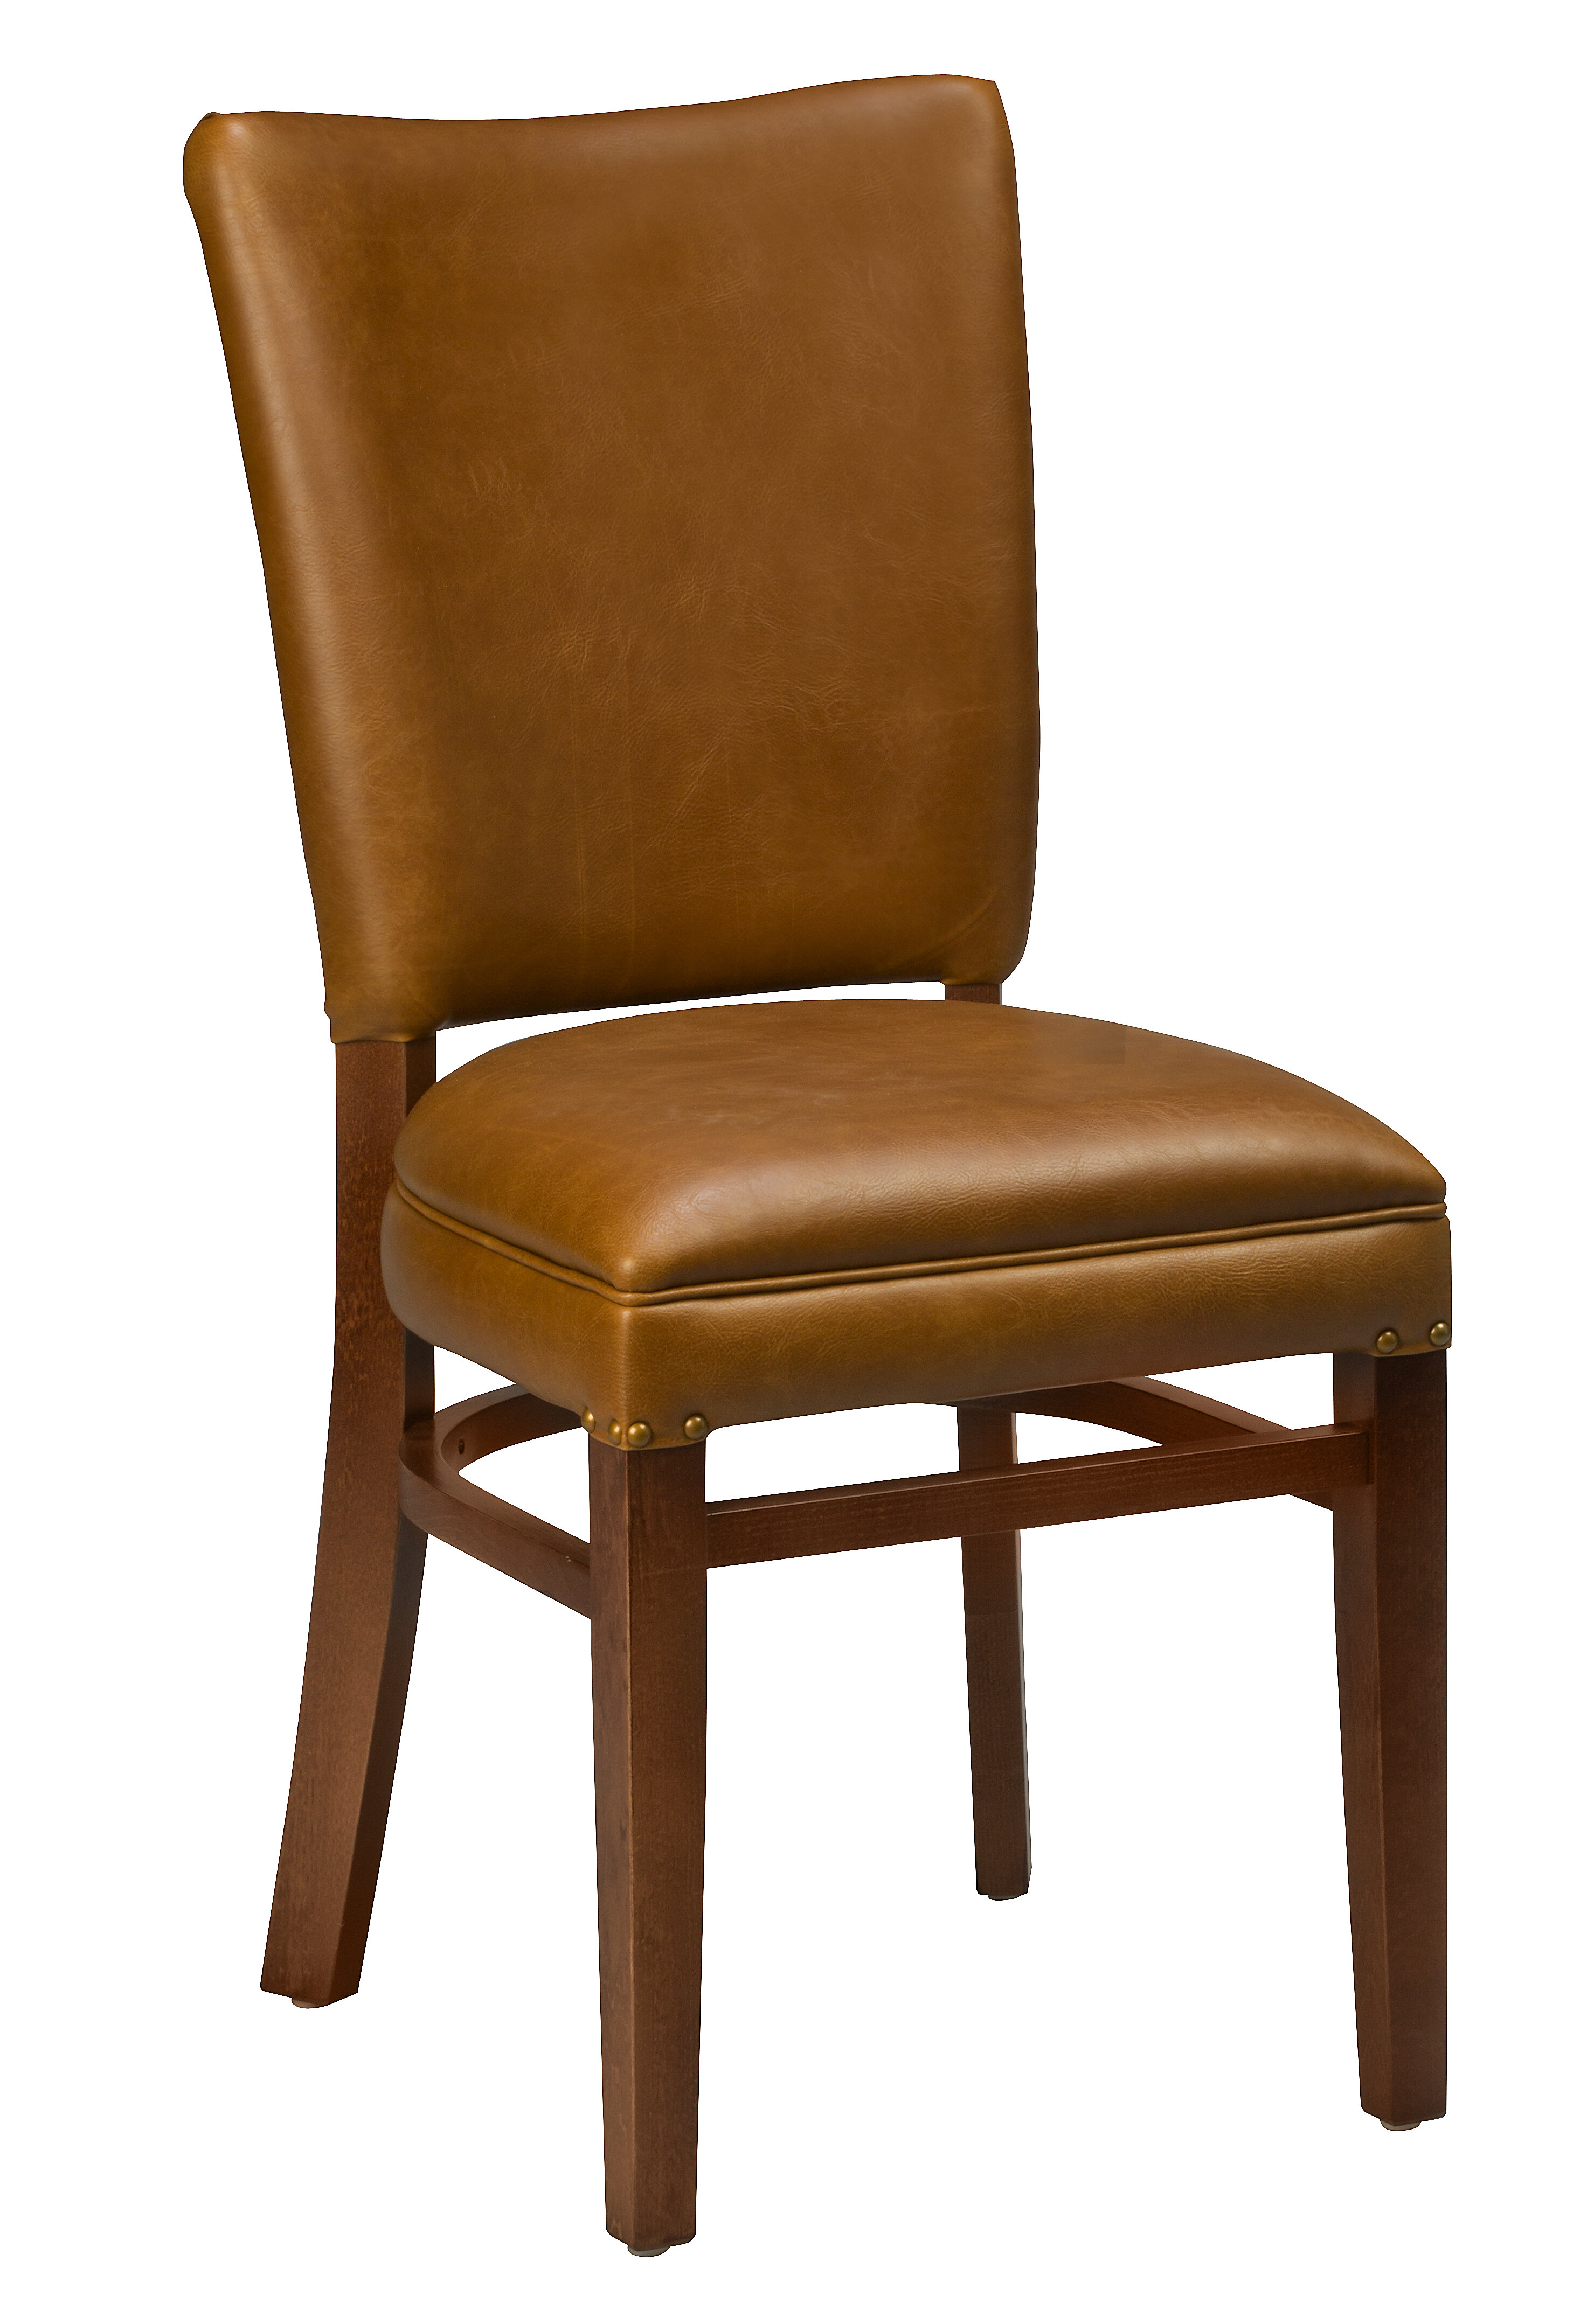 Miraculous Beechwood Skirted Seat Upholstered Dining Chair Pabps2019 Chair Design Images Pabps2019Com